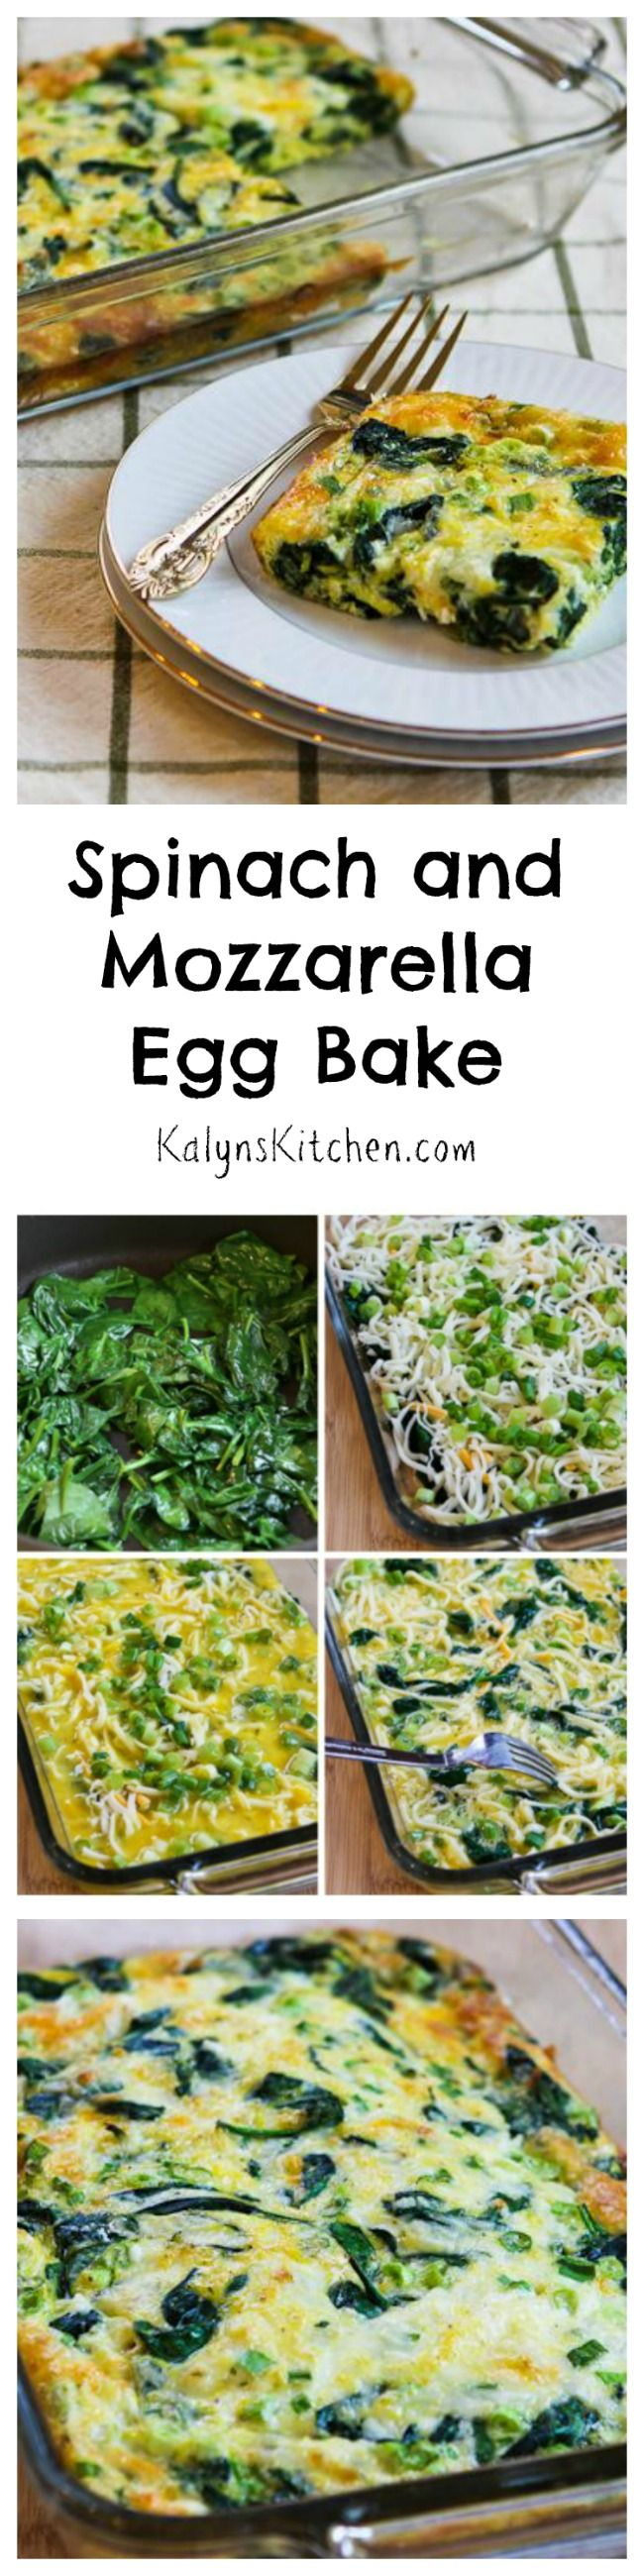 This Spinach and Mozzarella Egg Bake is a delicious way to start out your day with a healthy dose of greens